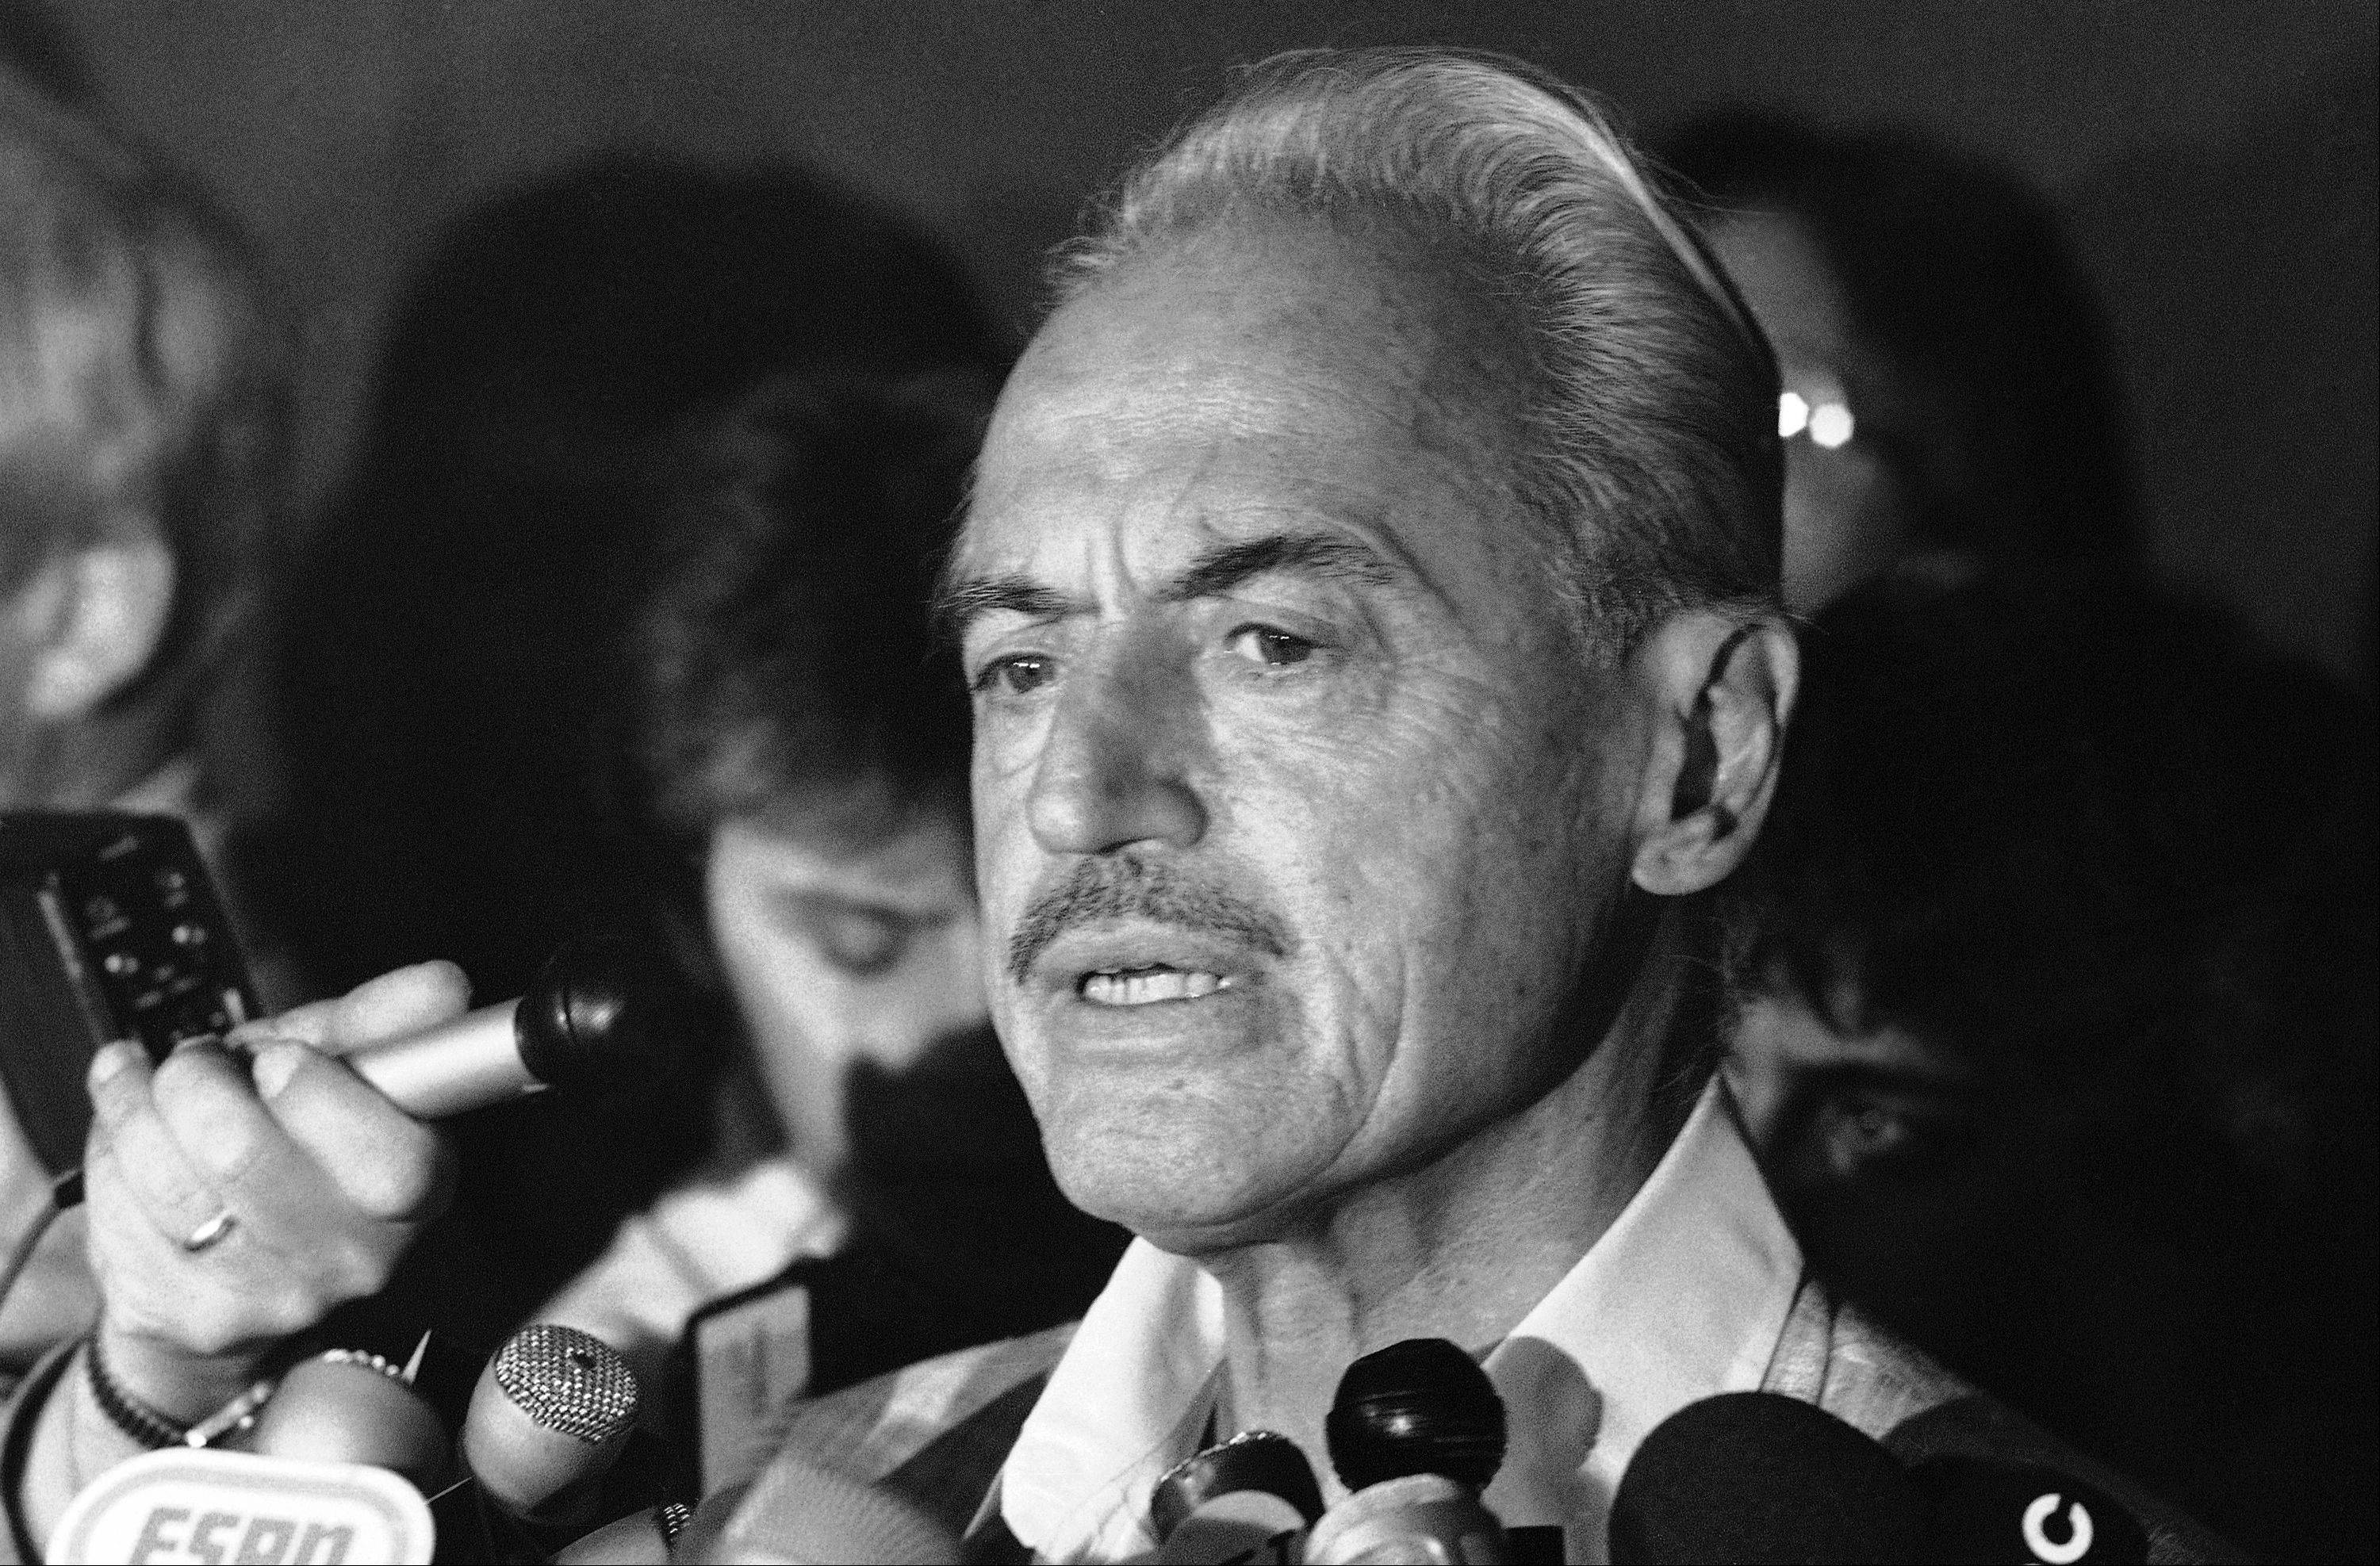 This July 16, 1981 file photo shows baseball union leader Marvin Miller speaking to reporters after rejecting a proposal to end a baseball strike, in New York. Miller died Tuesday in New York. He was 95.